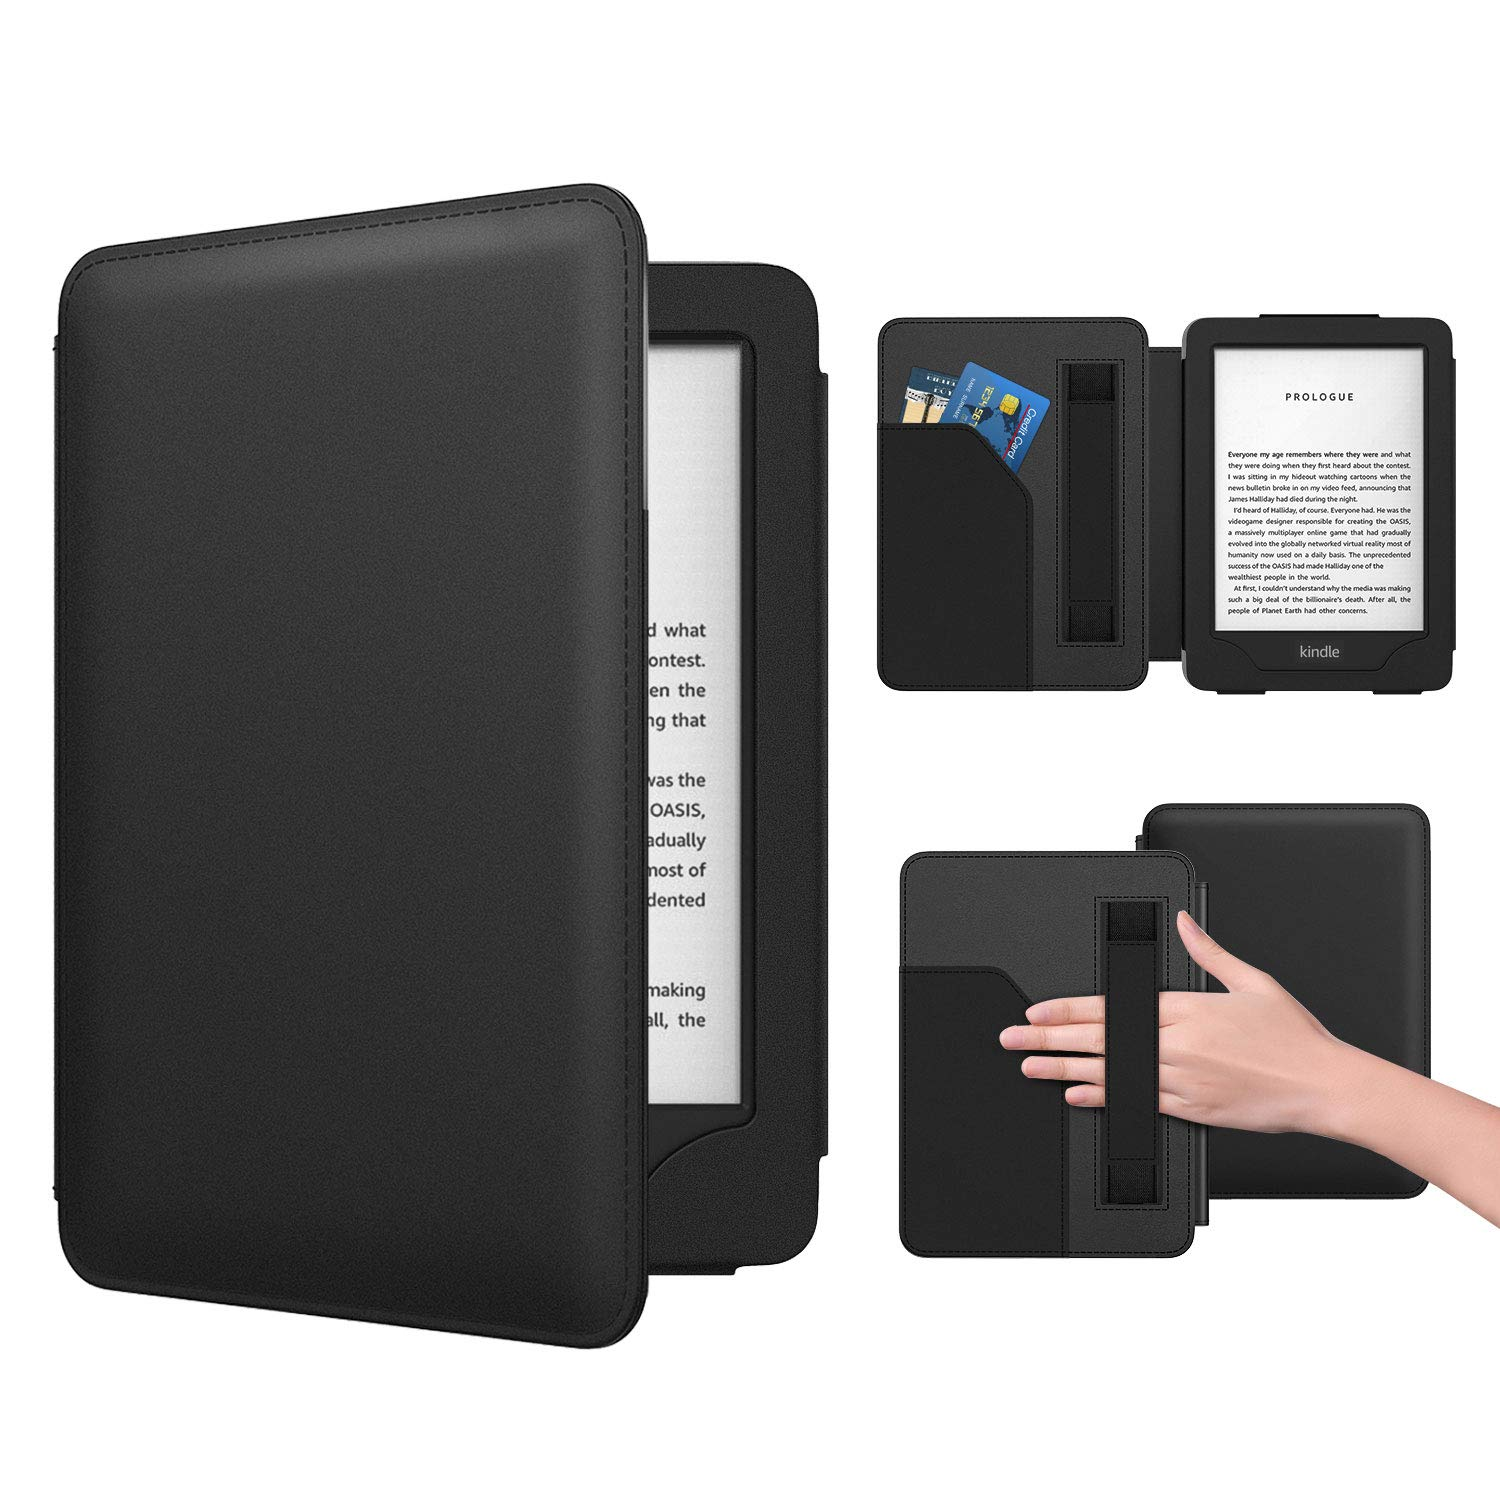 Dadanism Case Compatible with All-New Kindle 10th Gen 2019, Ultra Slim PU Leather Smart Cover with Hand Strap & Pocket Fit Amazon E-Reader 2019, Not Fit Kindle Paperwhite – Black (Auto Sleep/Wake)